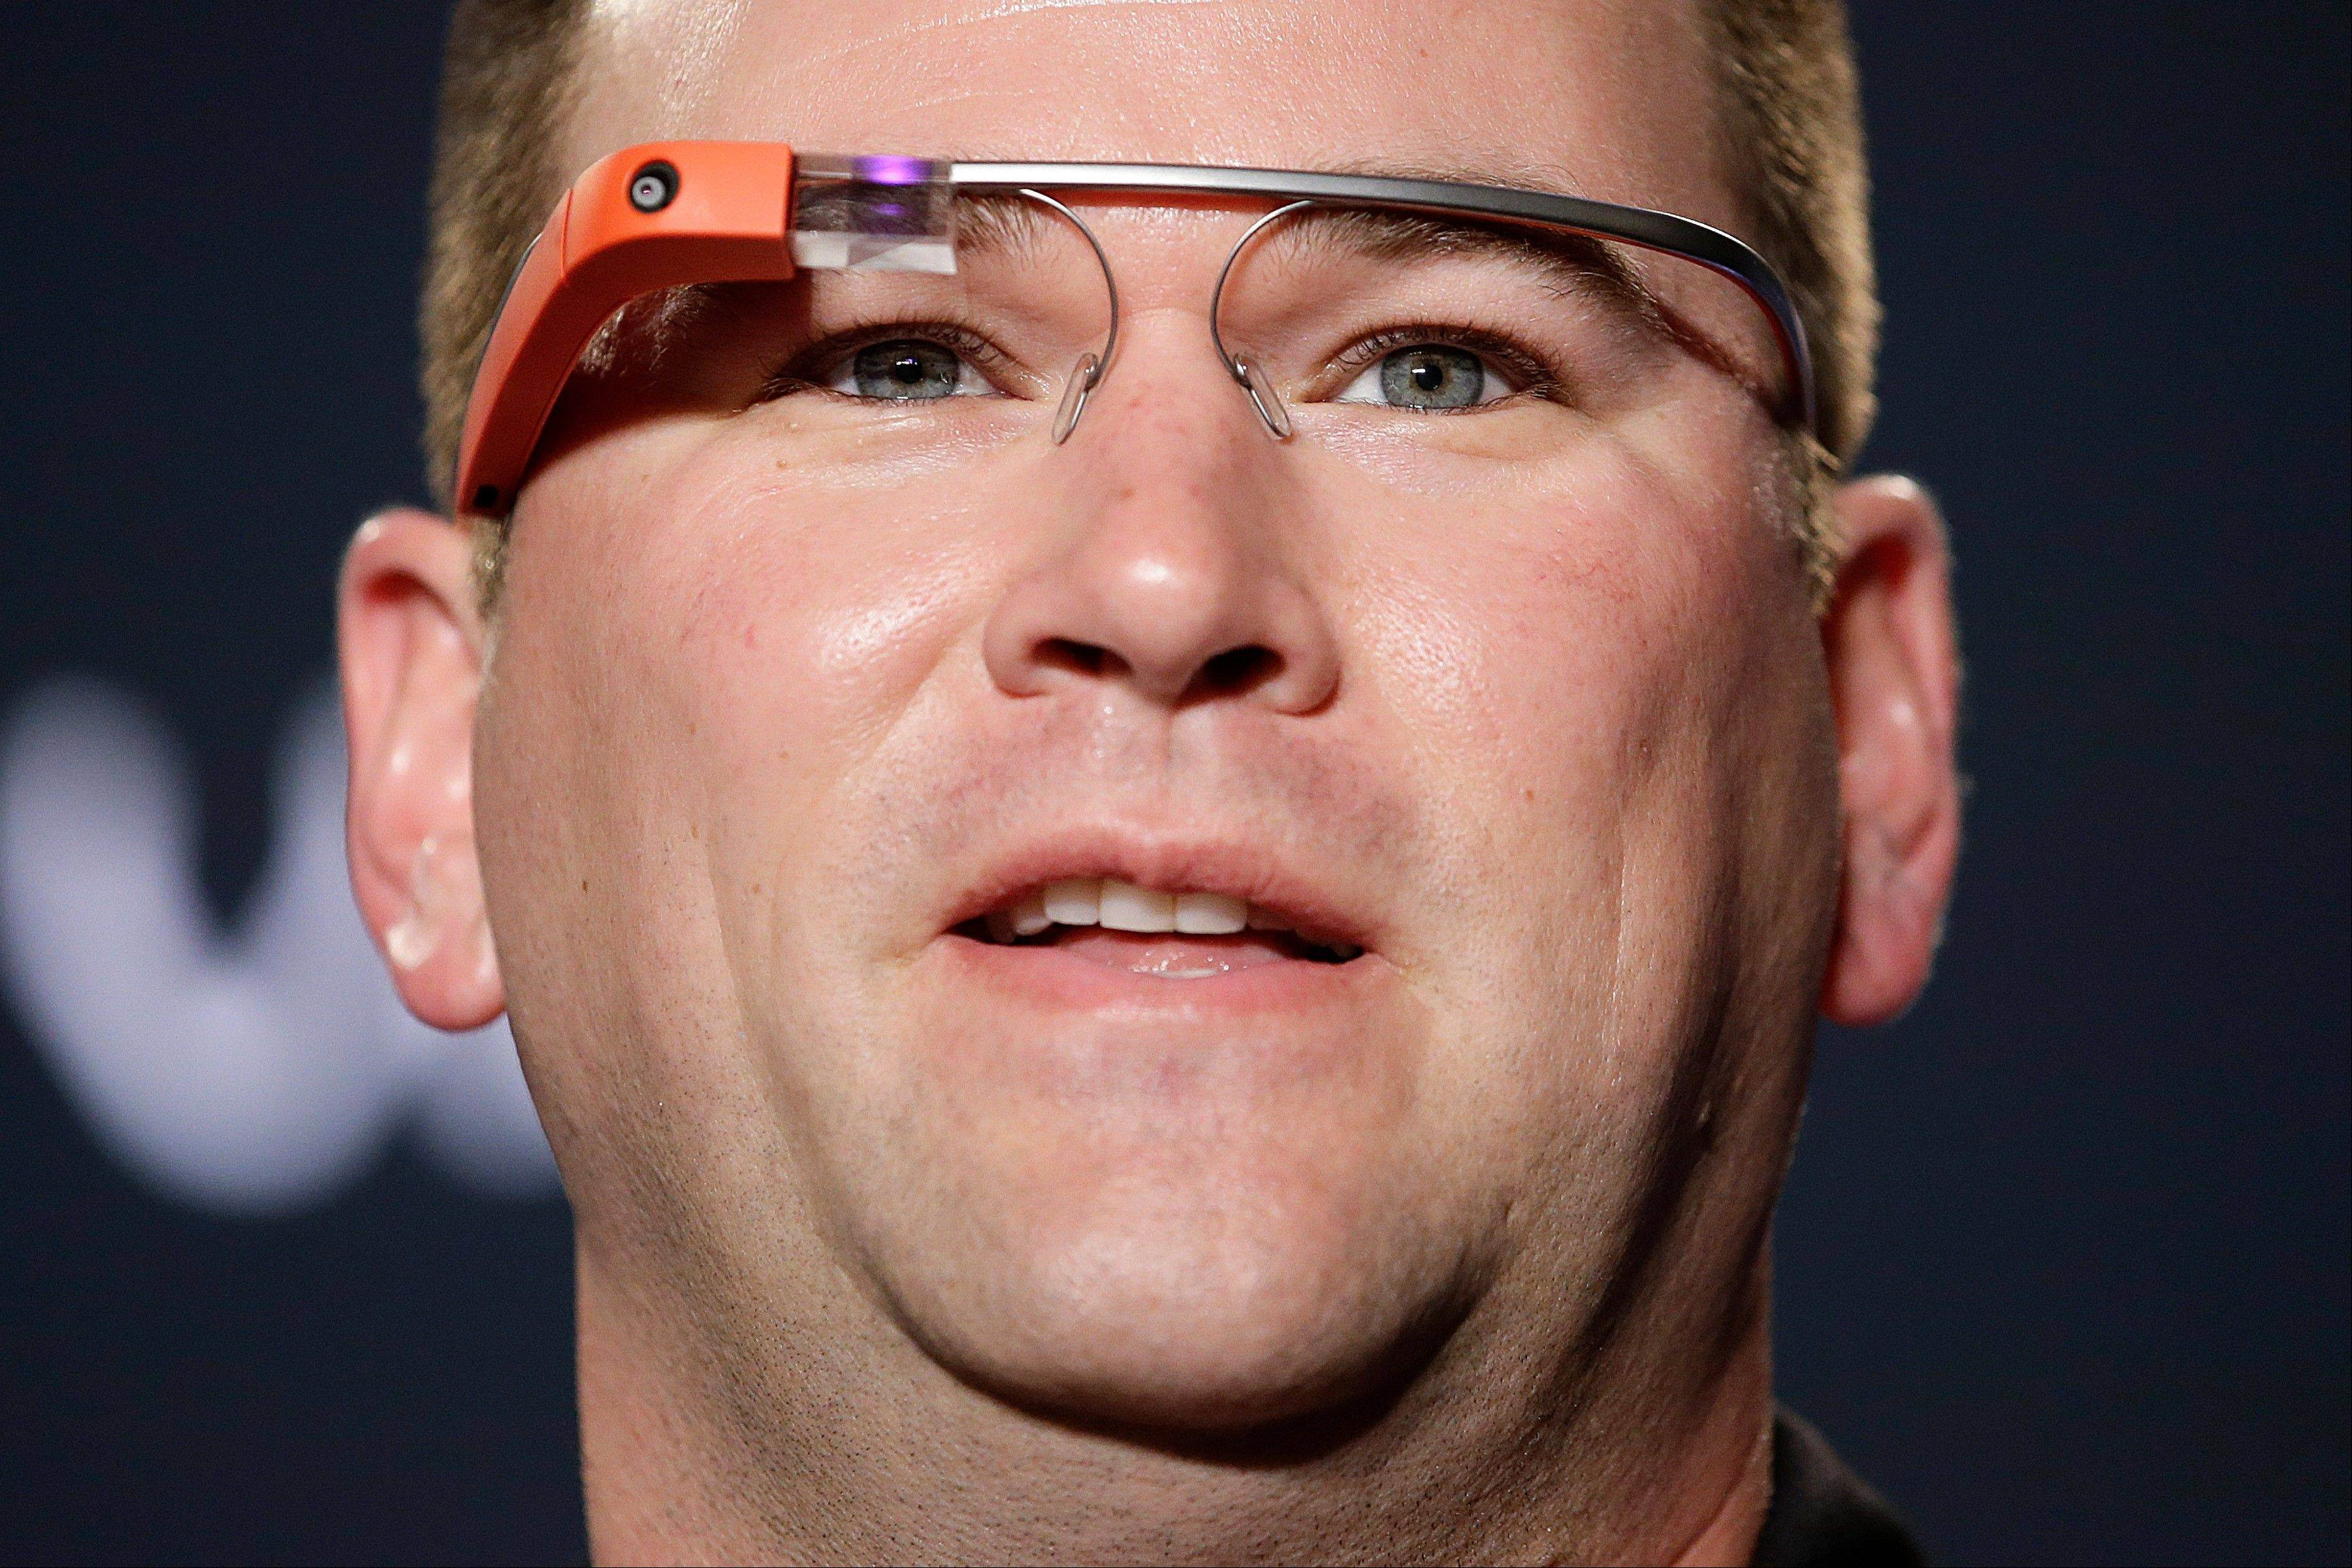 Stanford University football team's offensive coordinator Mike Bloomgren, wearing Google Glass, answers questions from the media during a news conference in Los Angeles.